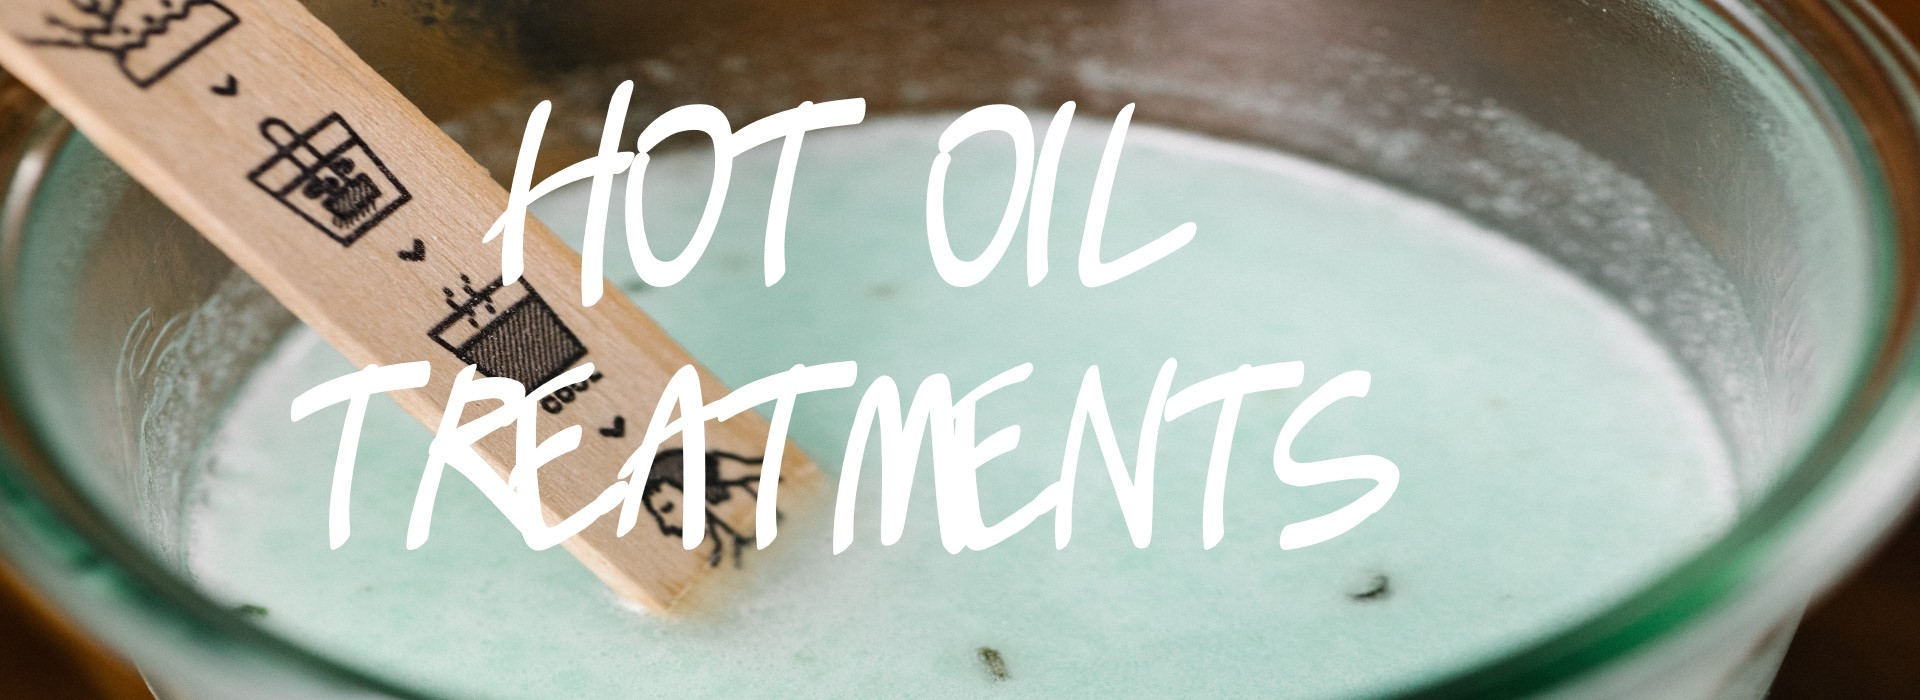 Hot Oil Treatments